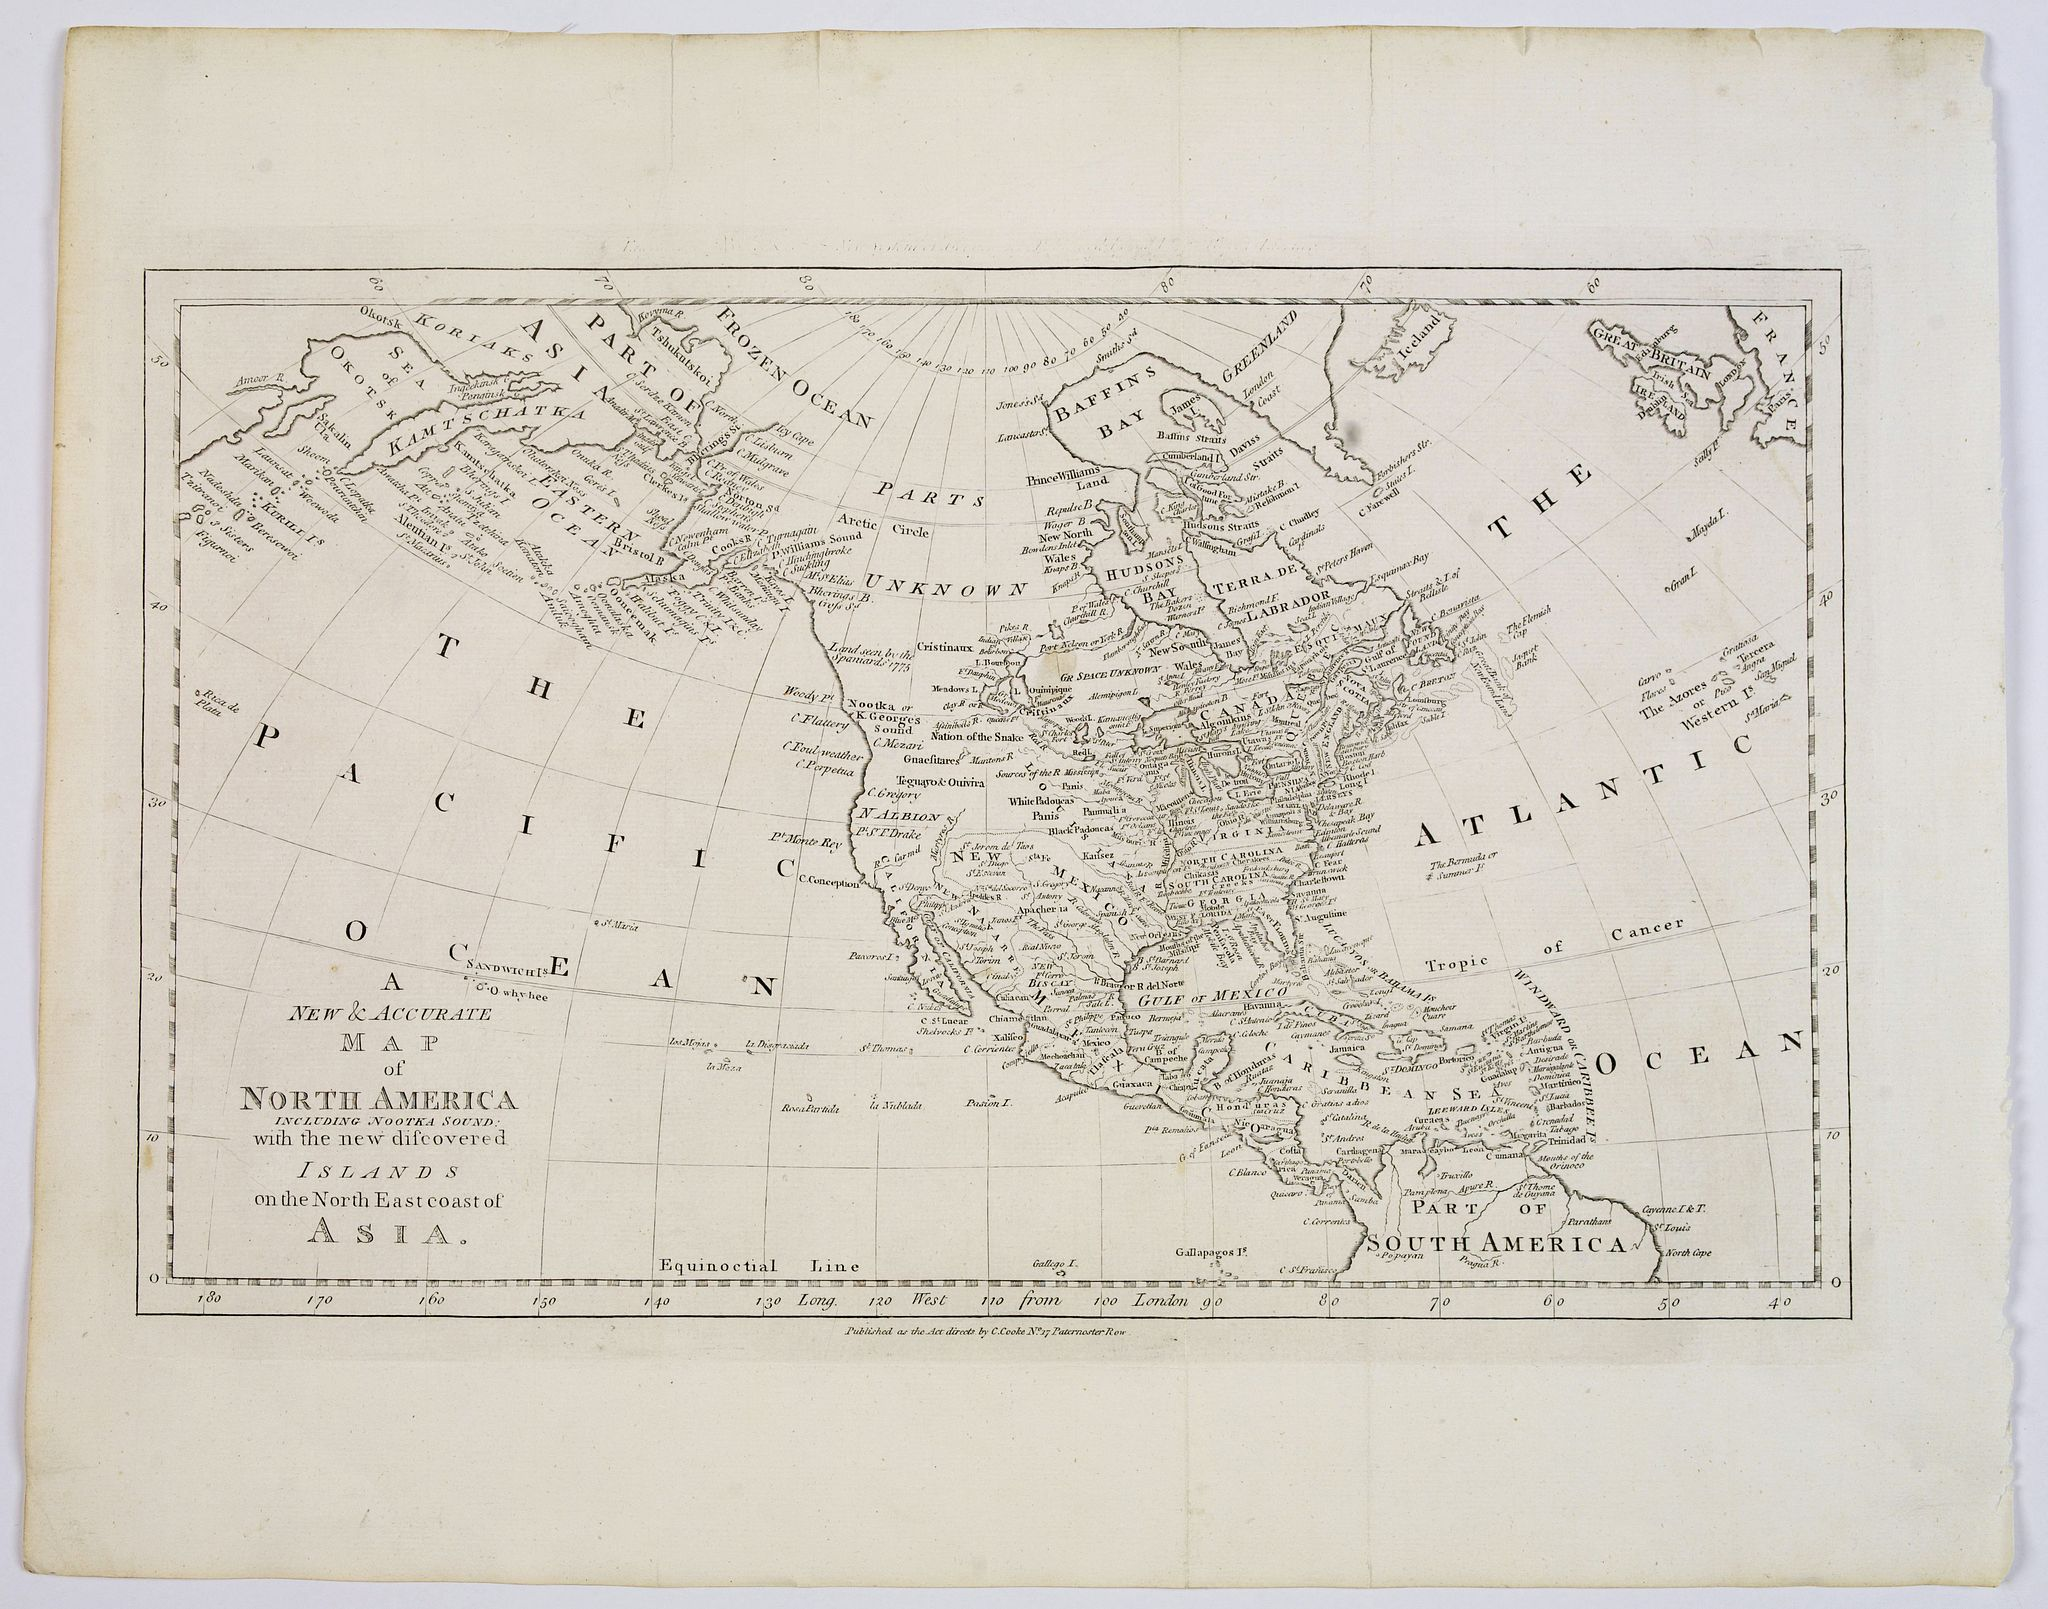 BOWEN, T. - A New and Accurate Map of North America, including Nootka Sound with the new discovered Islands on the north east coast of Asia.